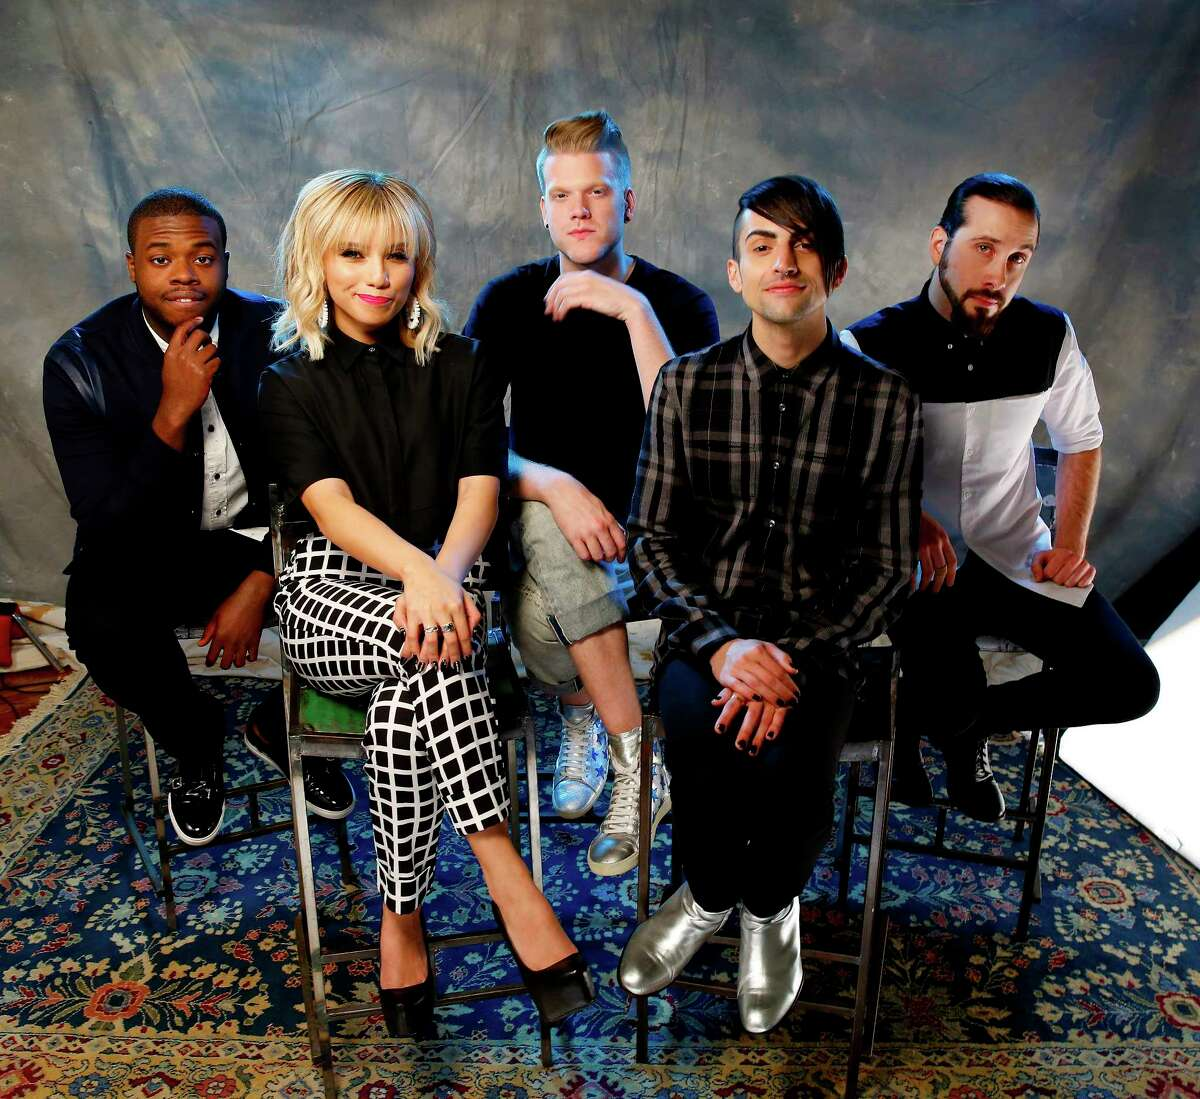 FILE - In this Sept. 4, 2015 photo, Kevin Olusola, from left, Kristie Maldonado, Scott Hoying, Mitch Grassi and Avi Kaplan of the group Pentatonix pose for a portrait at Sony Music Nashville in Nashville, Tenn. Pentatonix, Macklemore and Ryan Lewis, Nick Jonas and OMI will be ringing in the New Year from Hollywood for